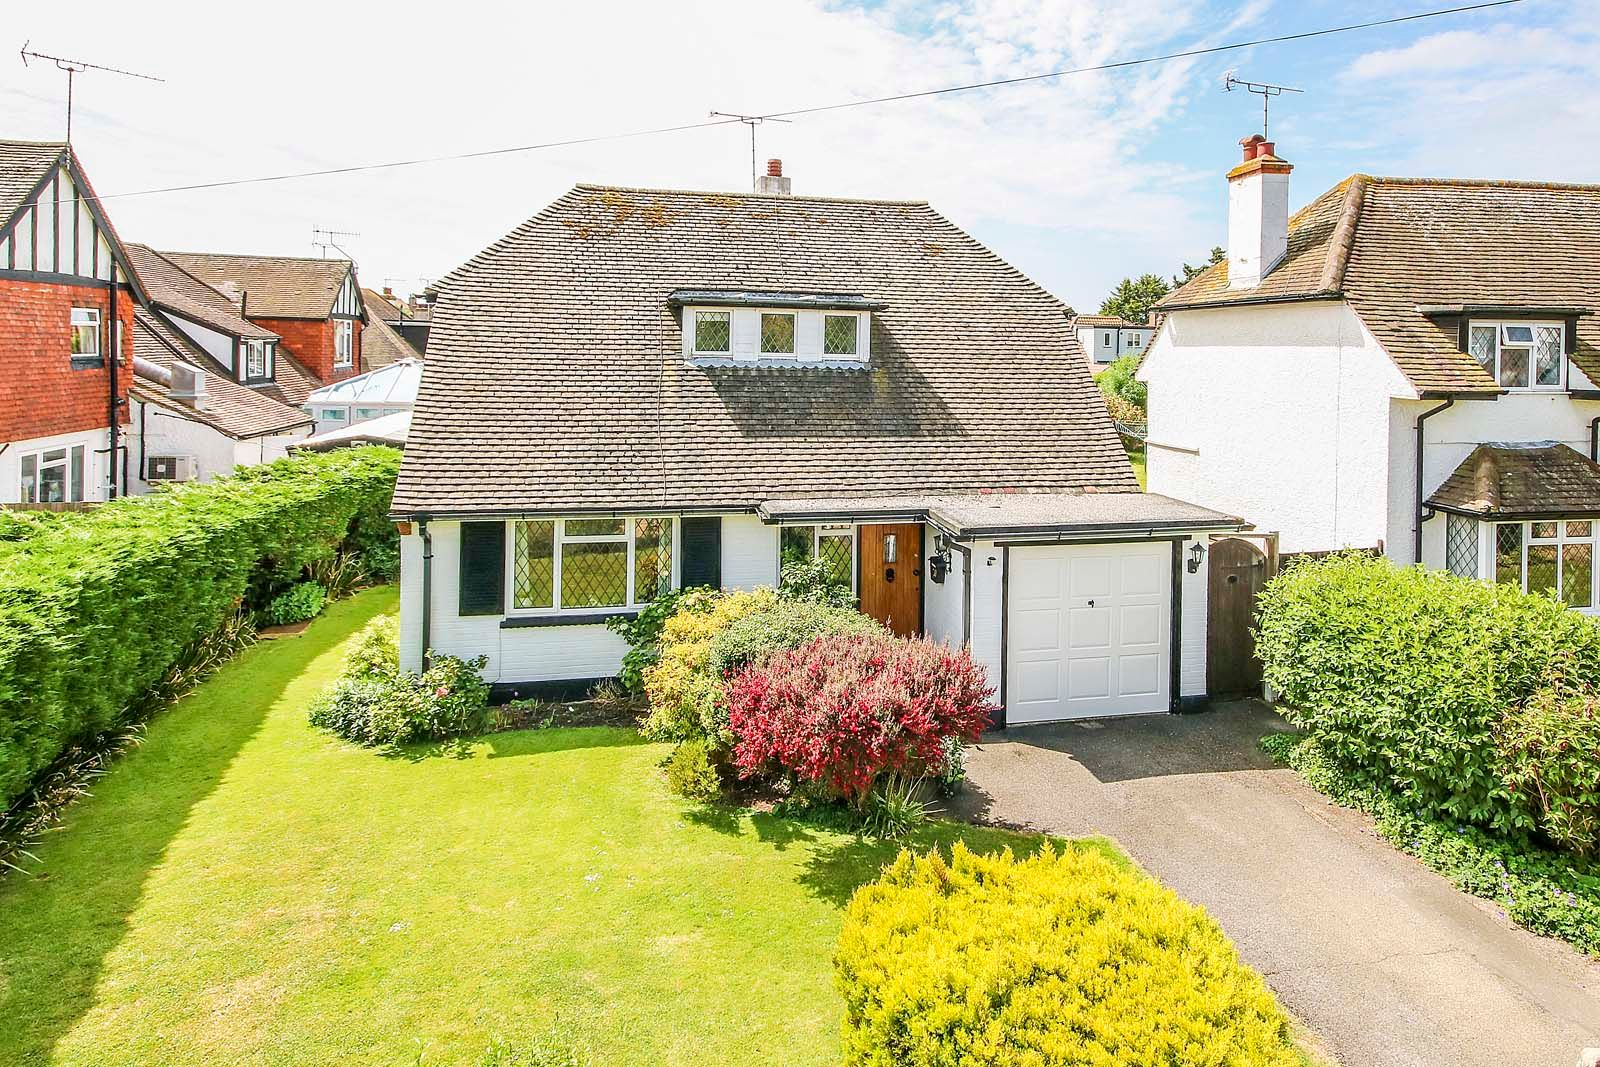 3 bed house for sale in Broadmark Avenue  - Property Image 10